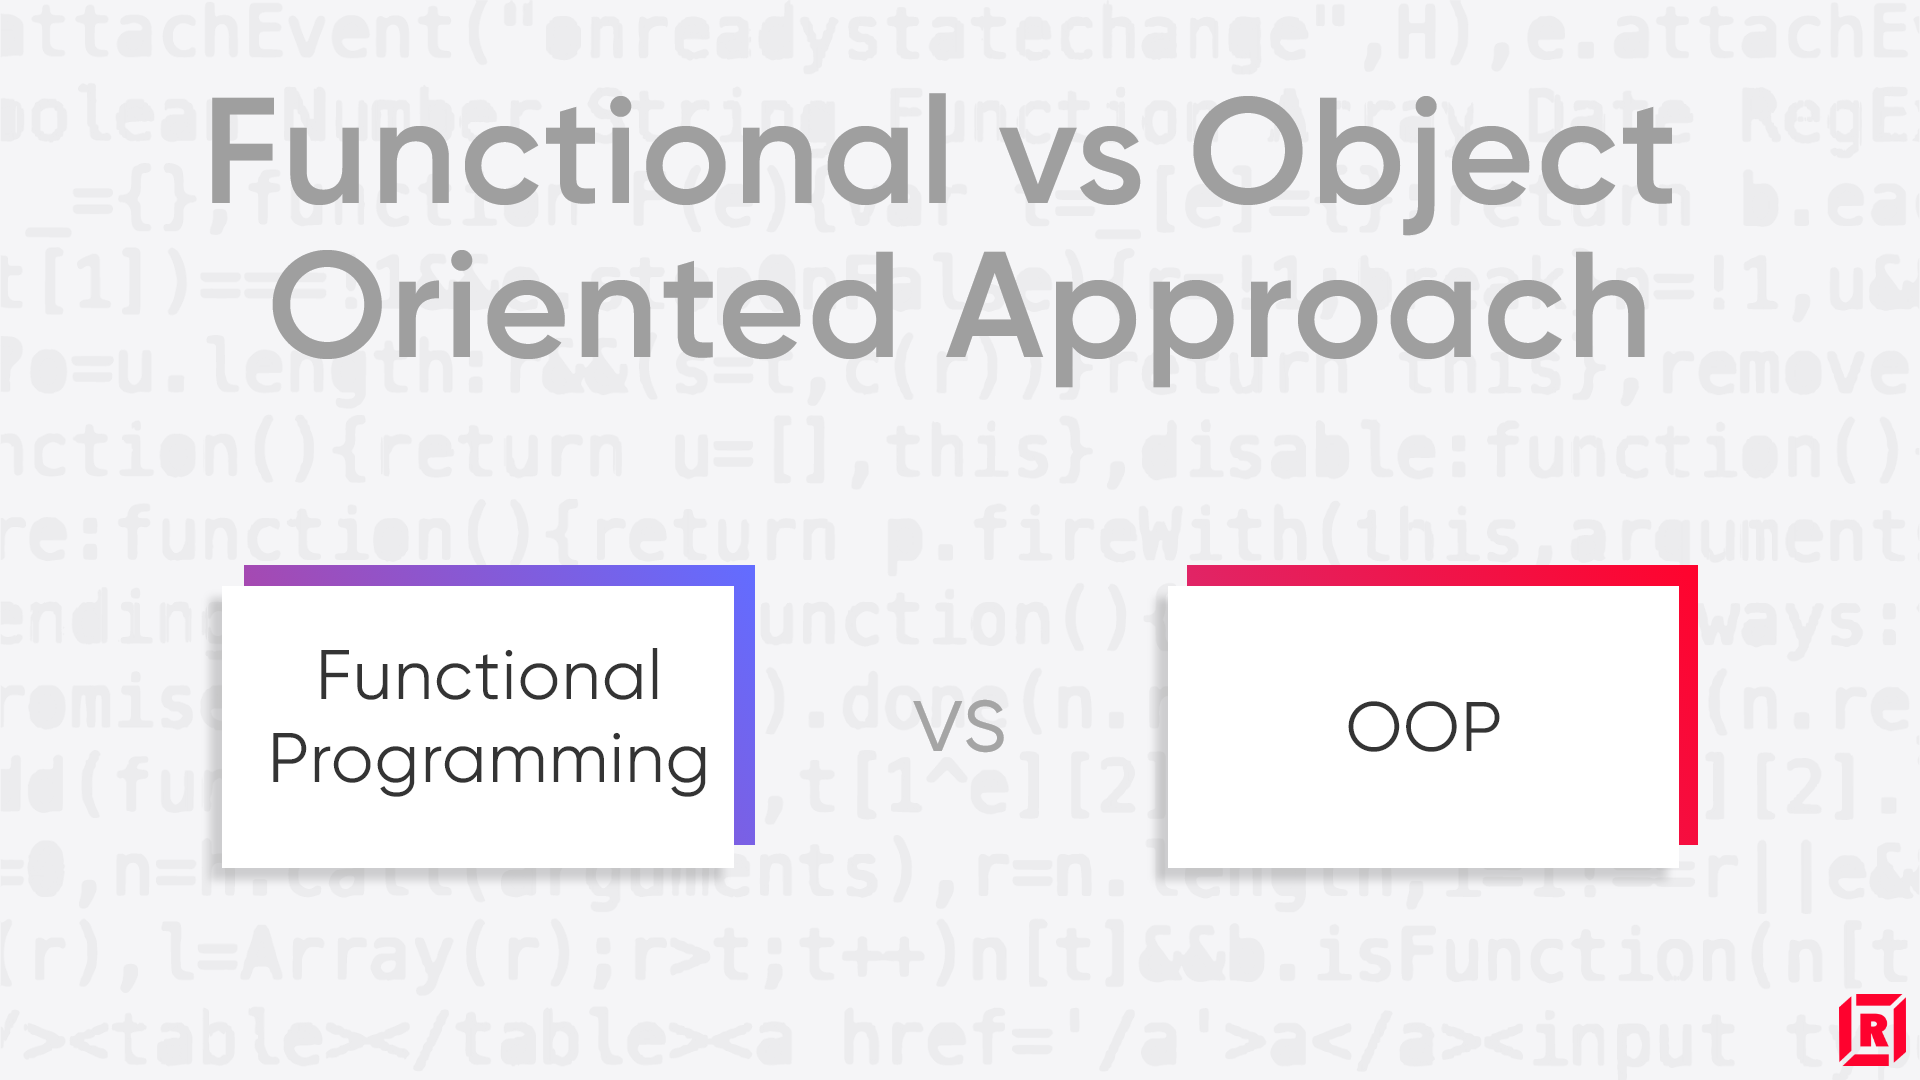 Functional vs Object Oriented Approach